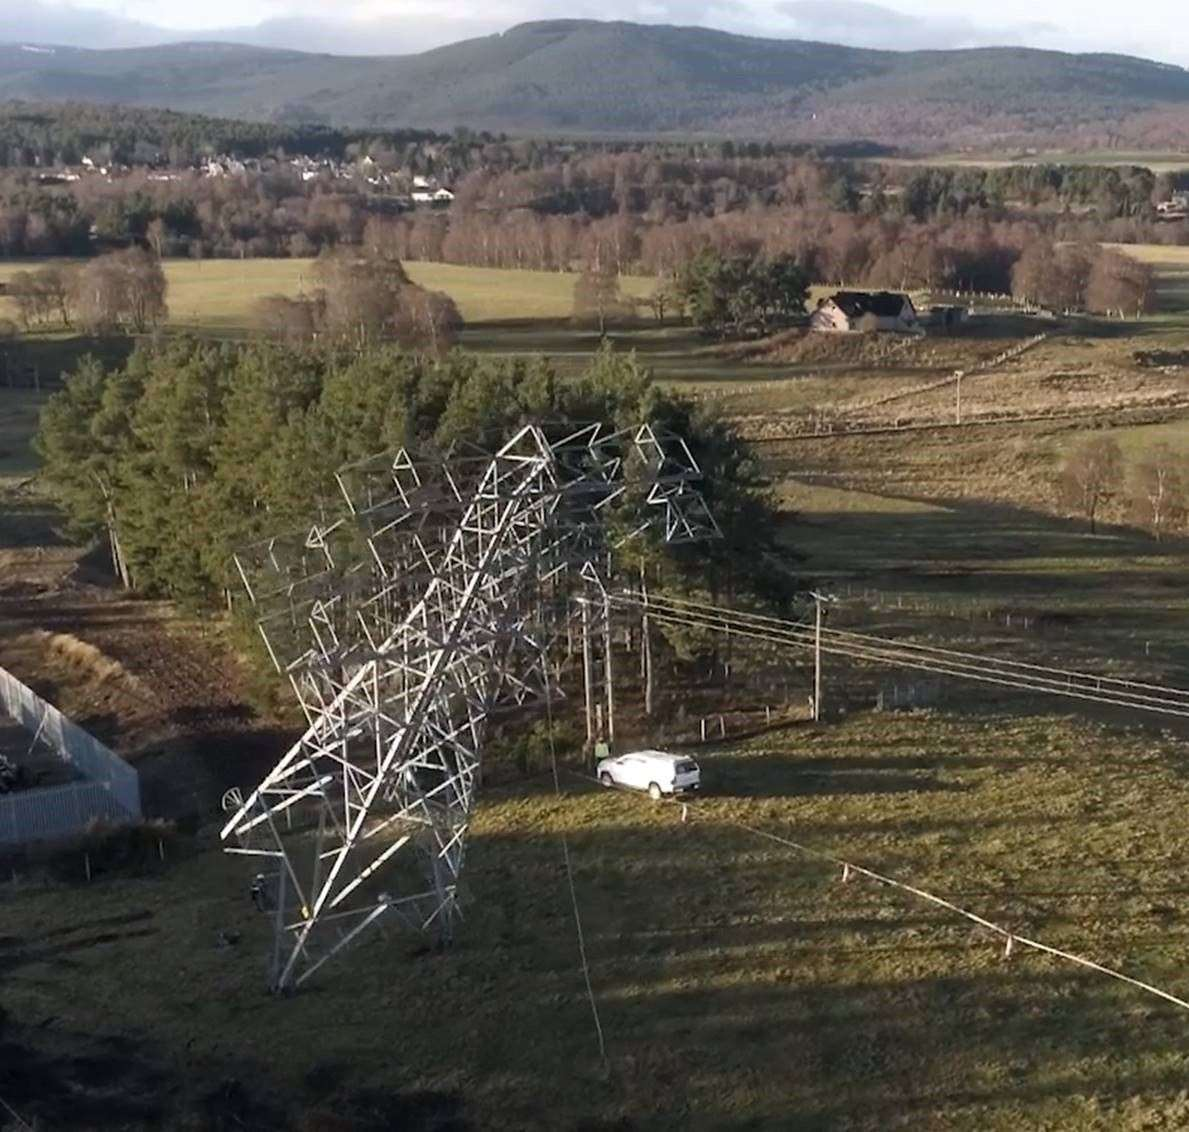 The final pylon comes crashing down to mark the end of the big money project in Strathspey.